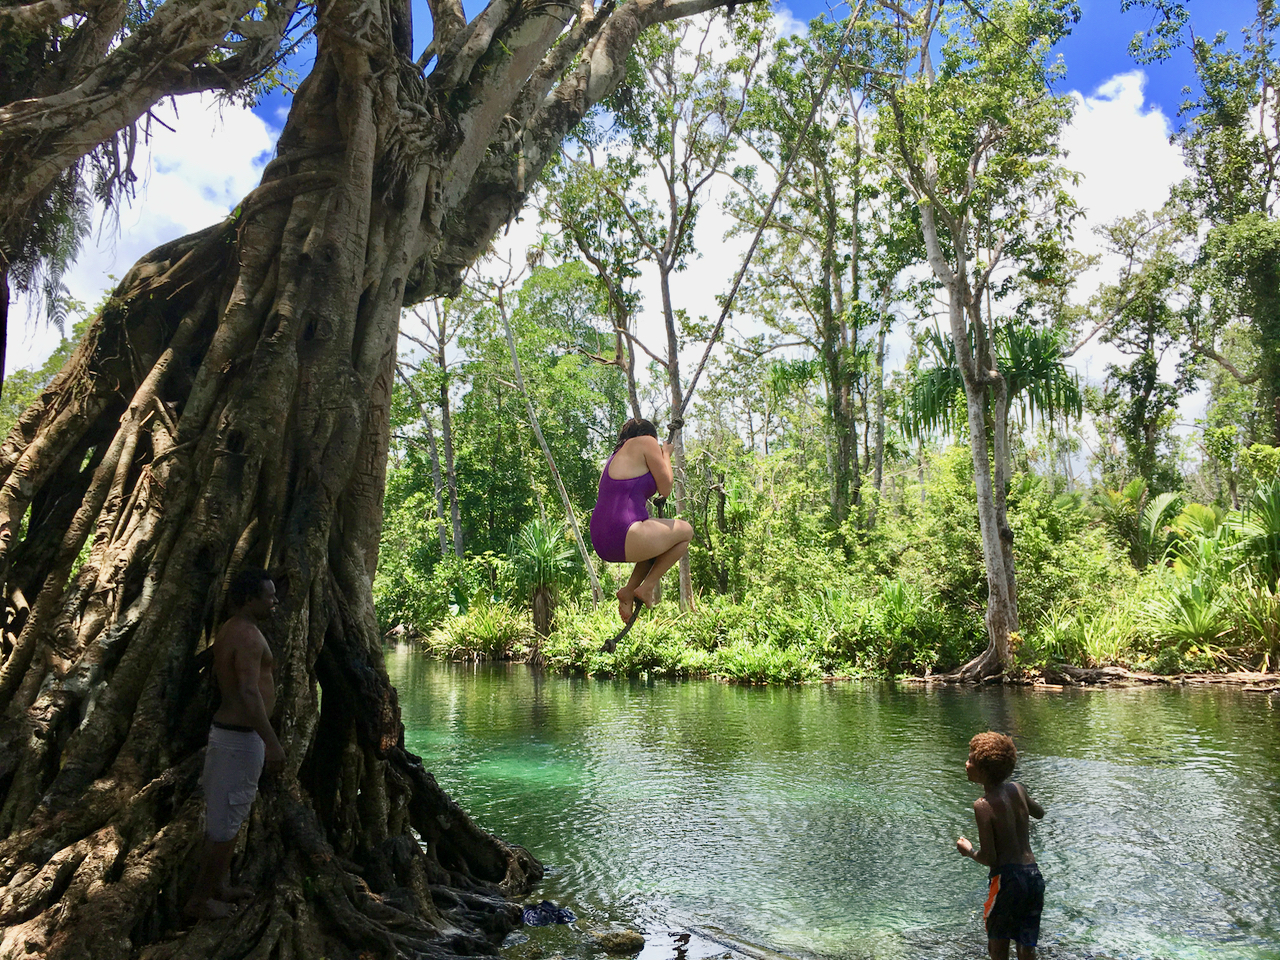 Simon, Exley and Eels: An Island Road Trip in Papua New Guinea